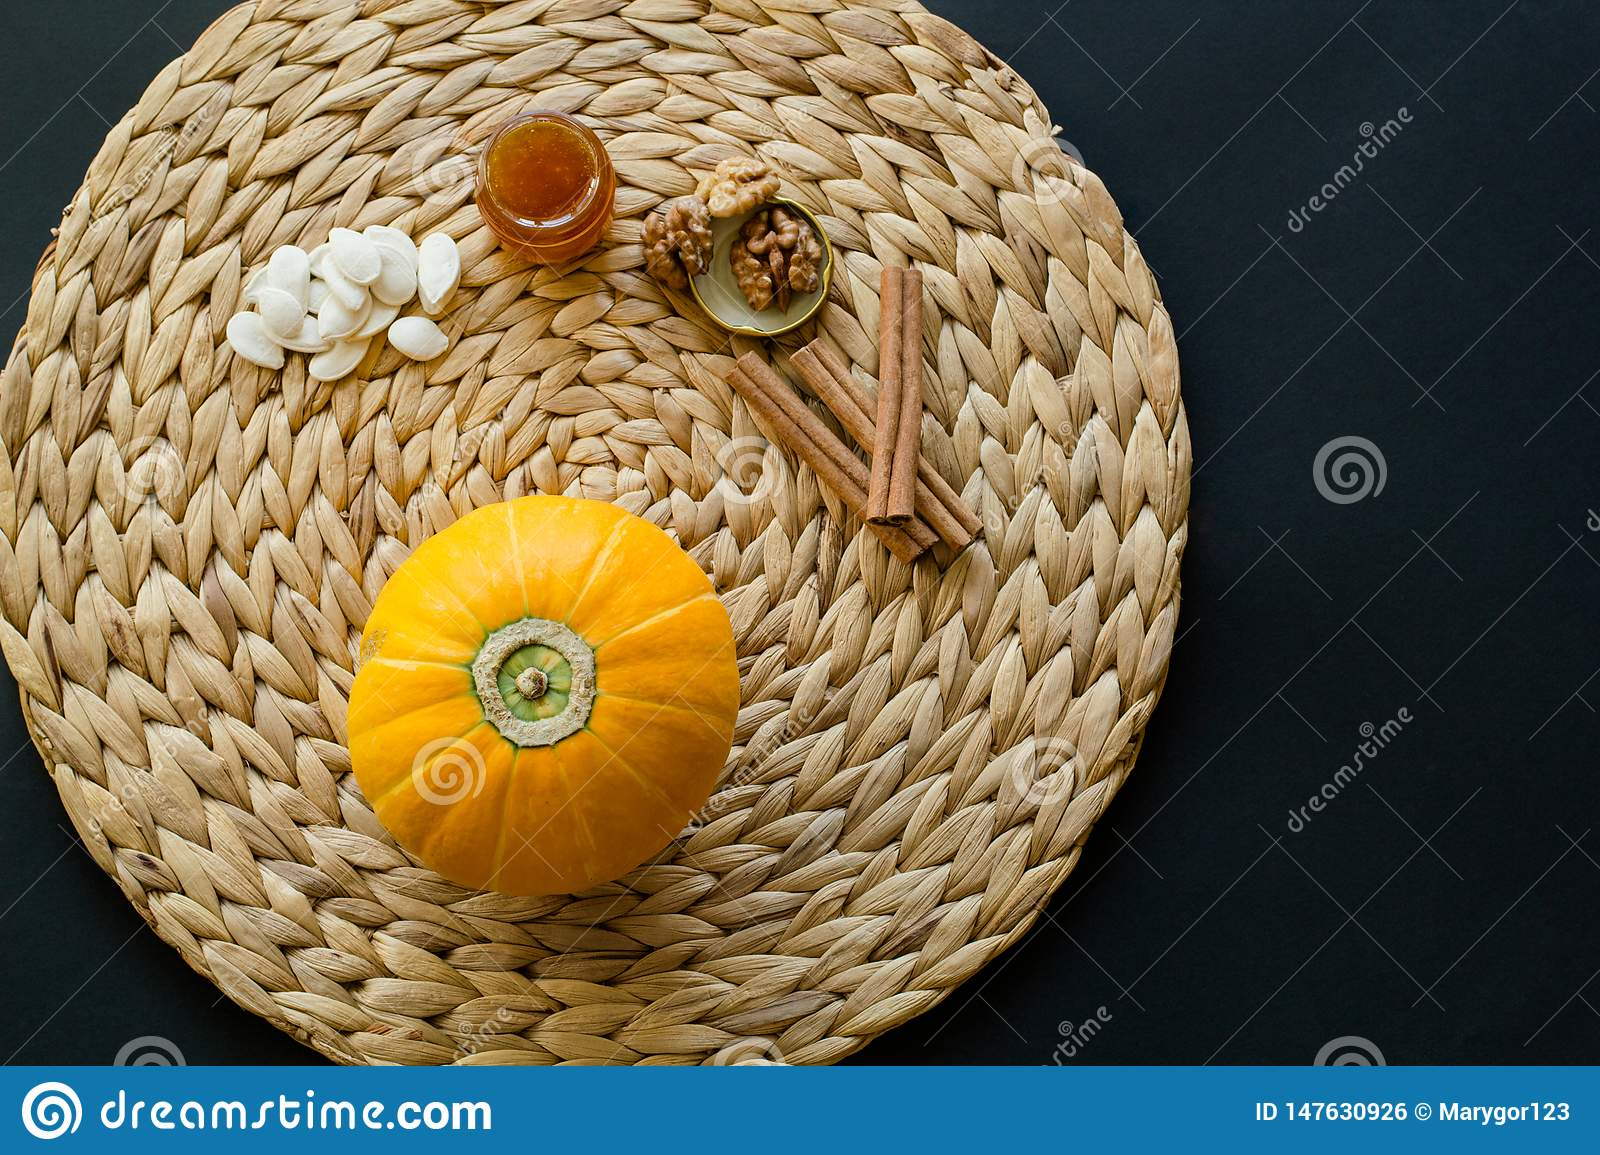 Small pumpkin with seeds, little glass can of honey, walnuts and cinnamon sticks on a circle mat/napkin made of water hyacinth on